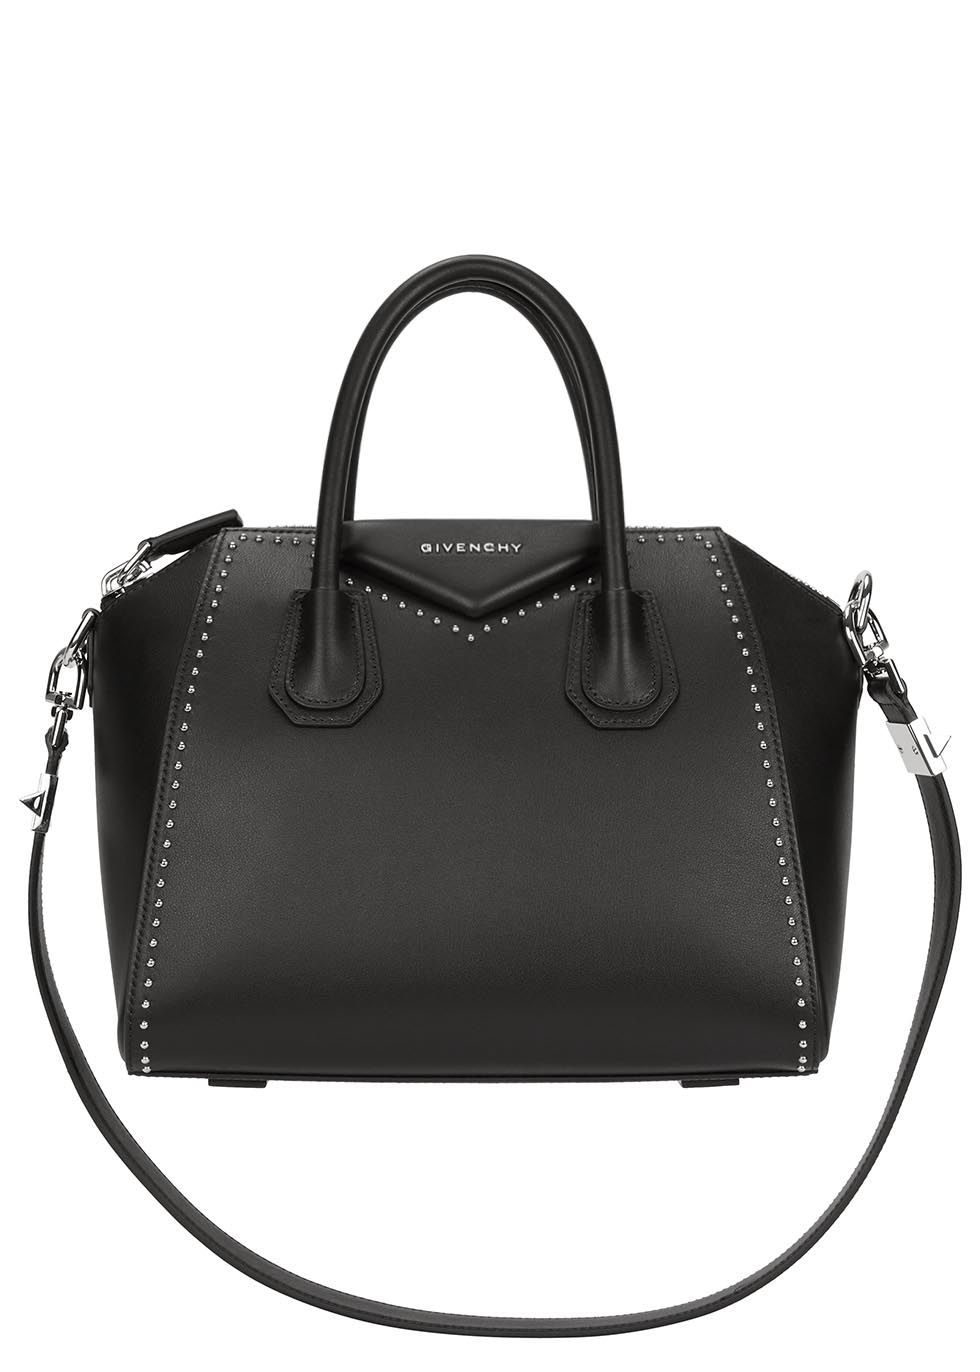 Givenchy black leather tote Two top handles, shoulder strap, studded, designer plaque, feet, silver hardware, internal zipped pocket, patch pocket, phone pocket, fully lined Zip fastening at top Comes with a dust bag